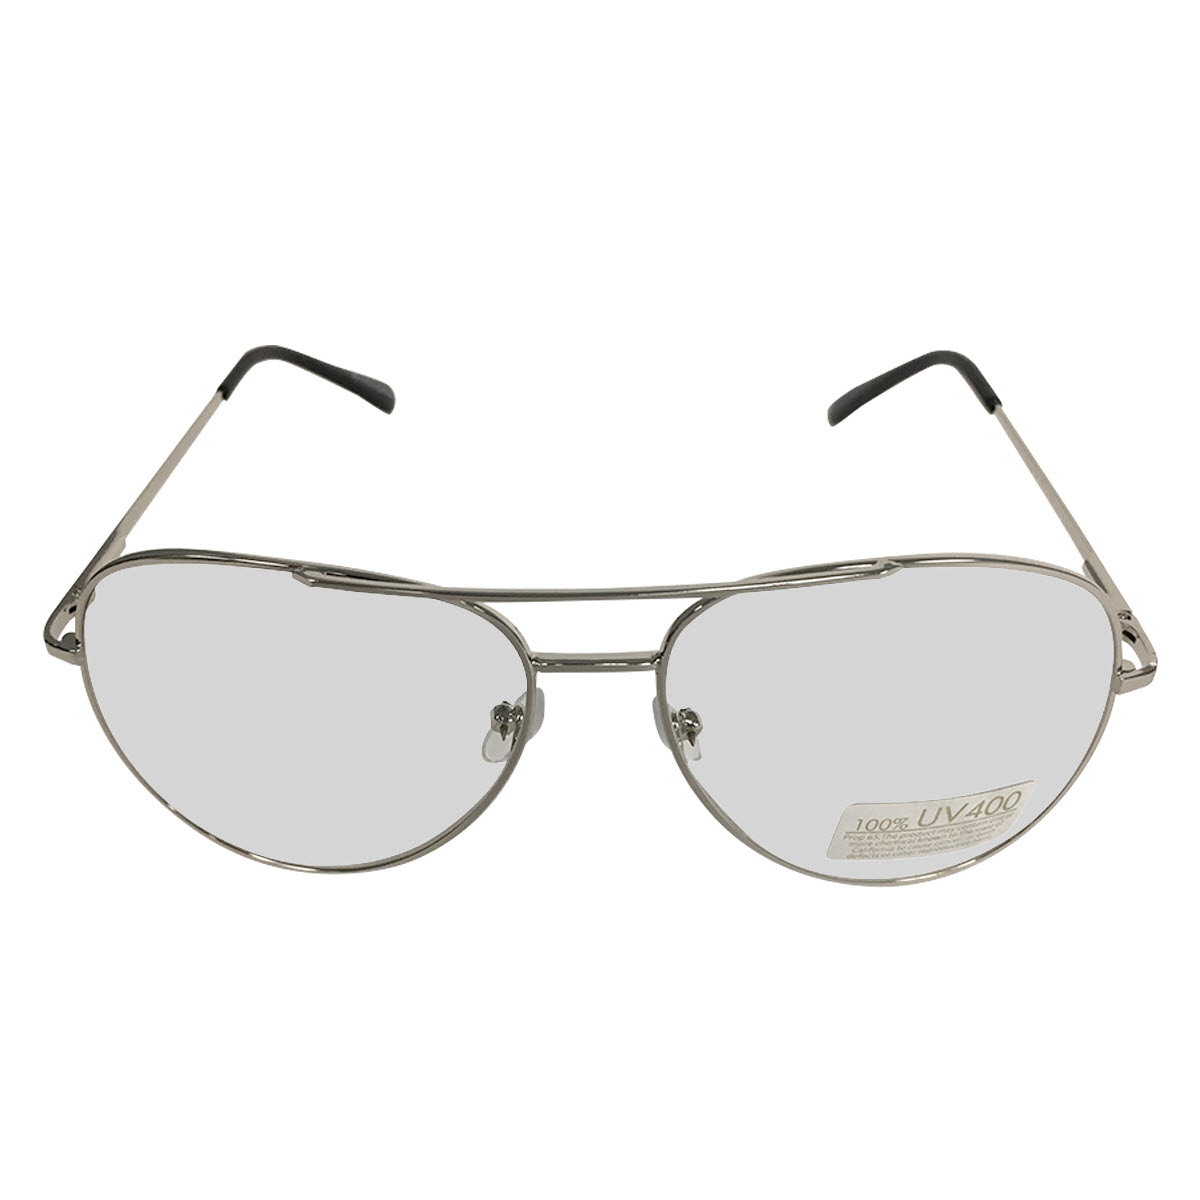 5f010812089 Silver Frames With Clear Lens Aviator Glasses Napoleon Dynamite ...